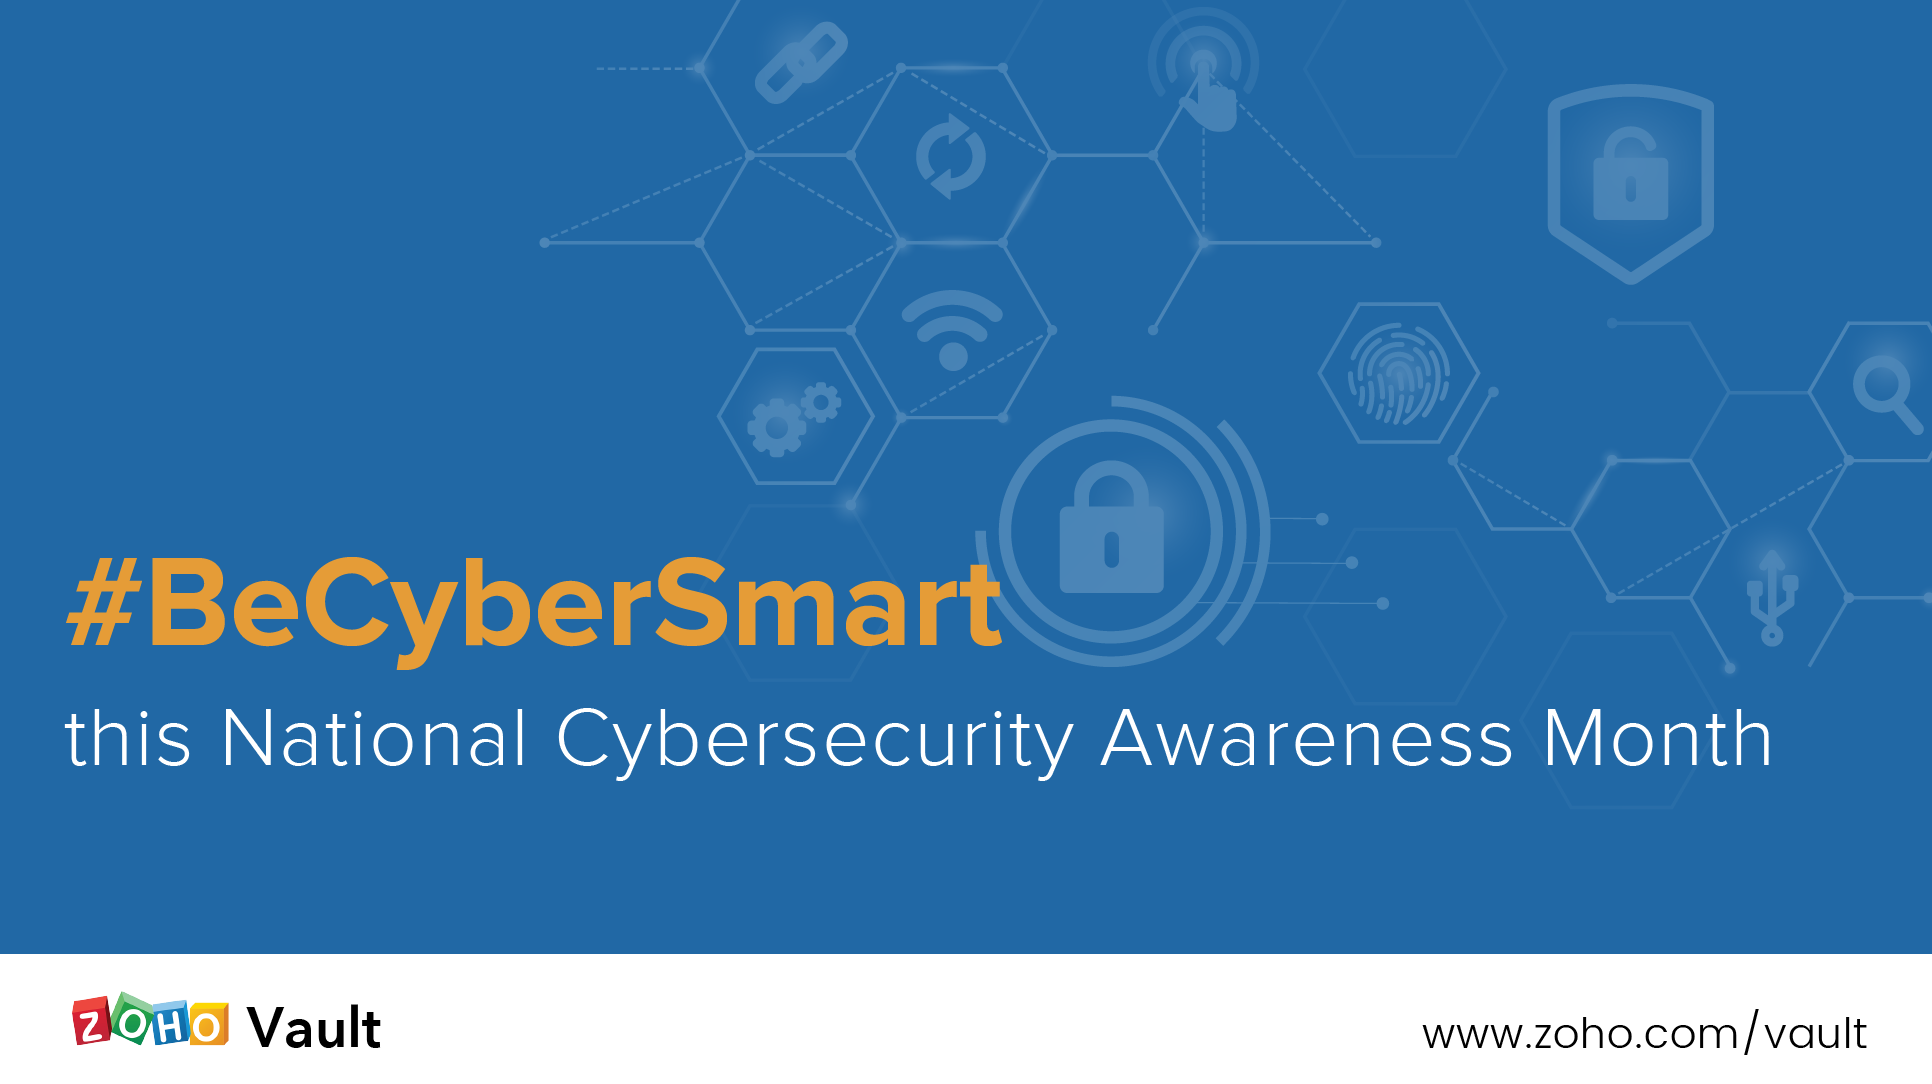 #BeCyberSmart this National Cybersecurity Awareness Month